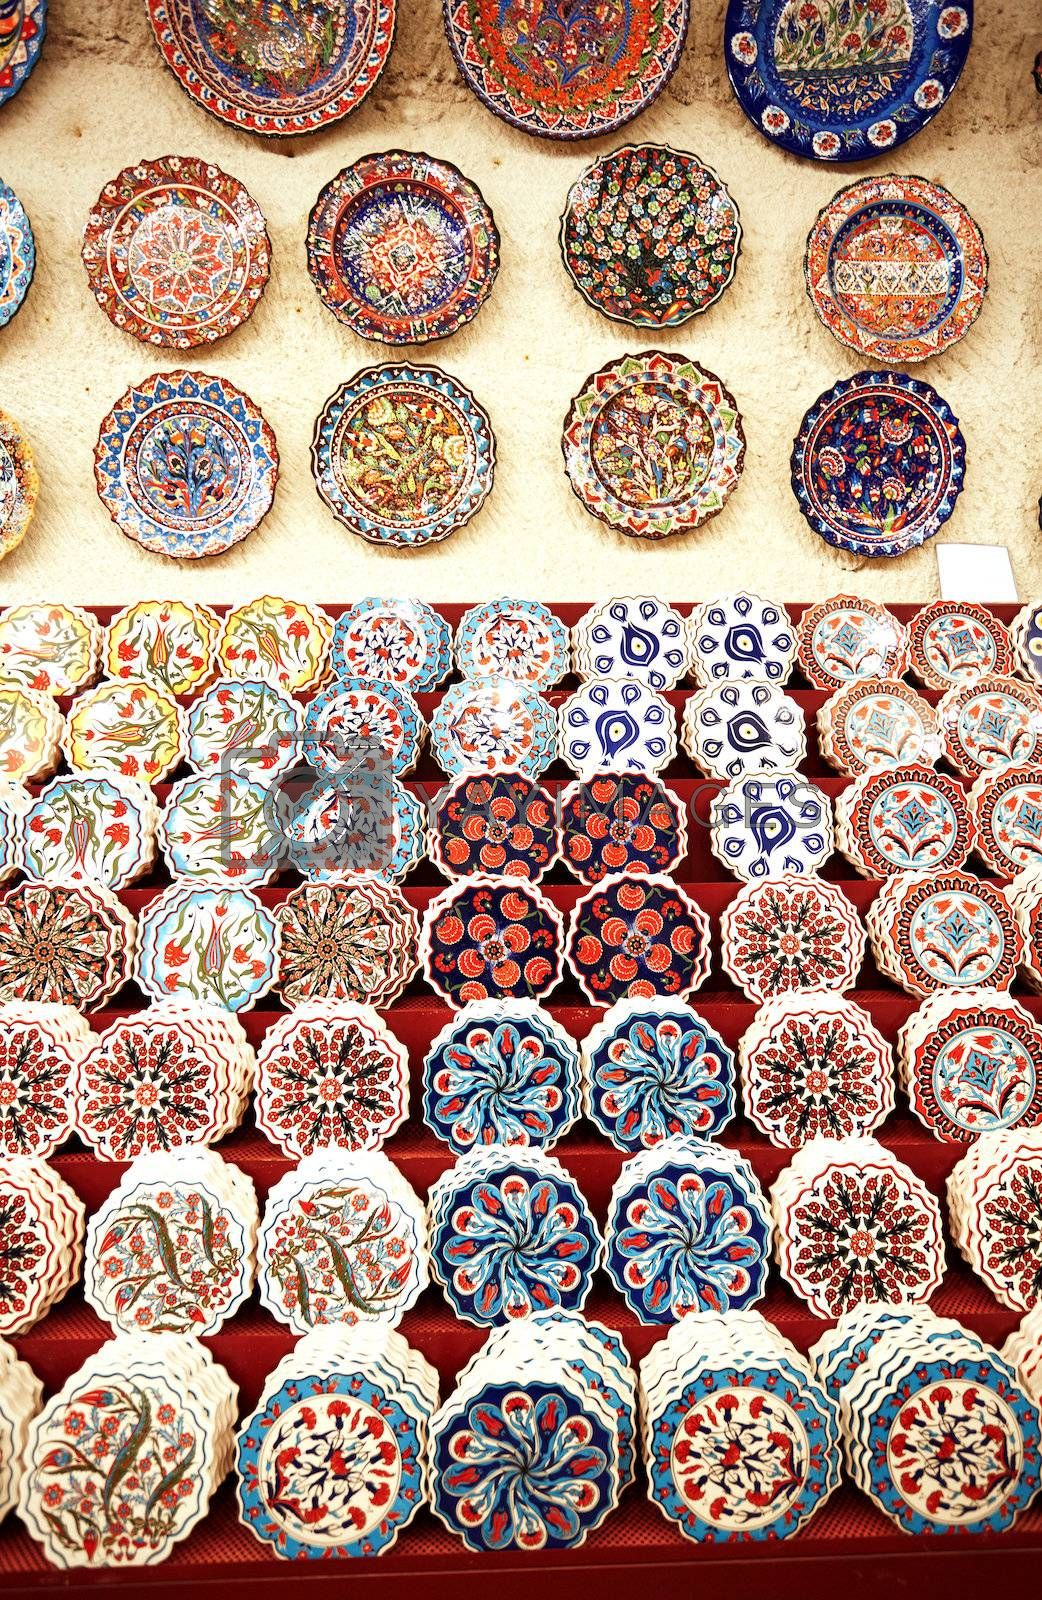 Ceramic art at pottery shop. Turkey